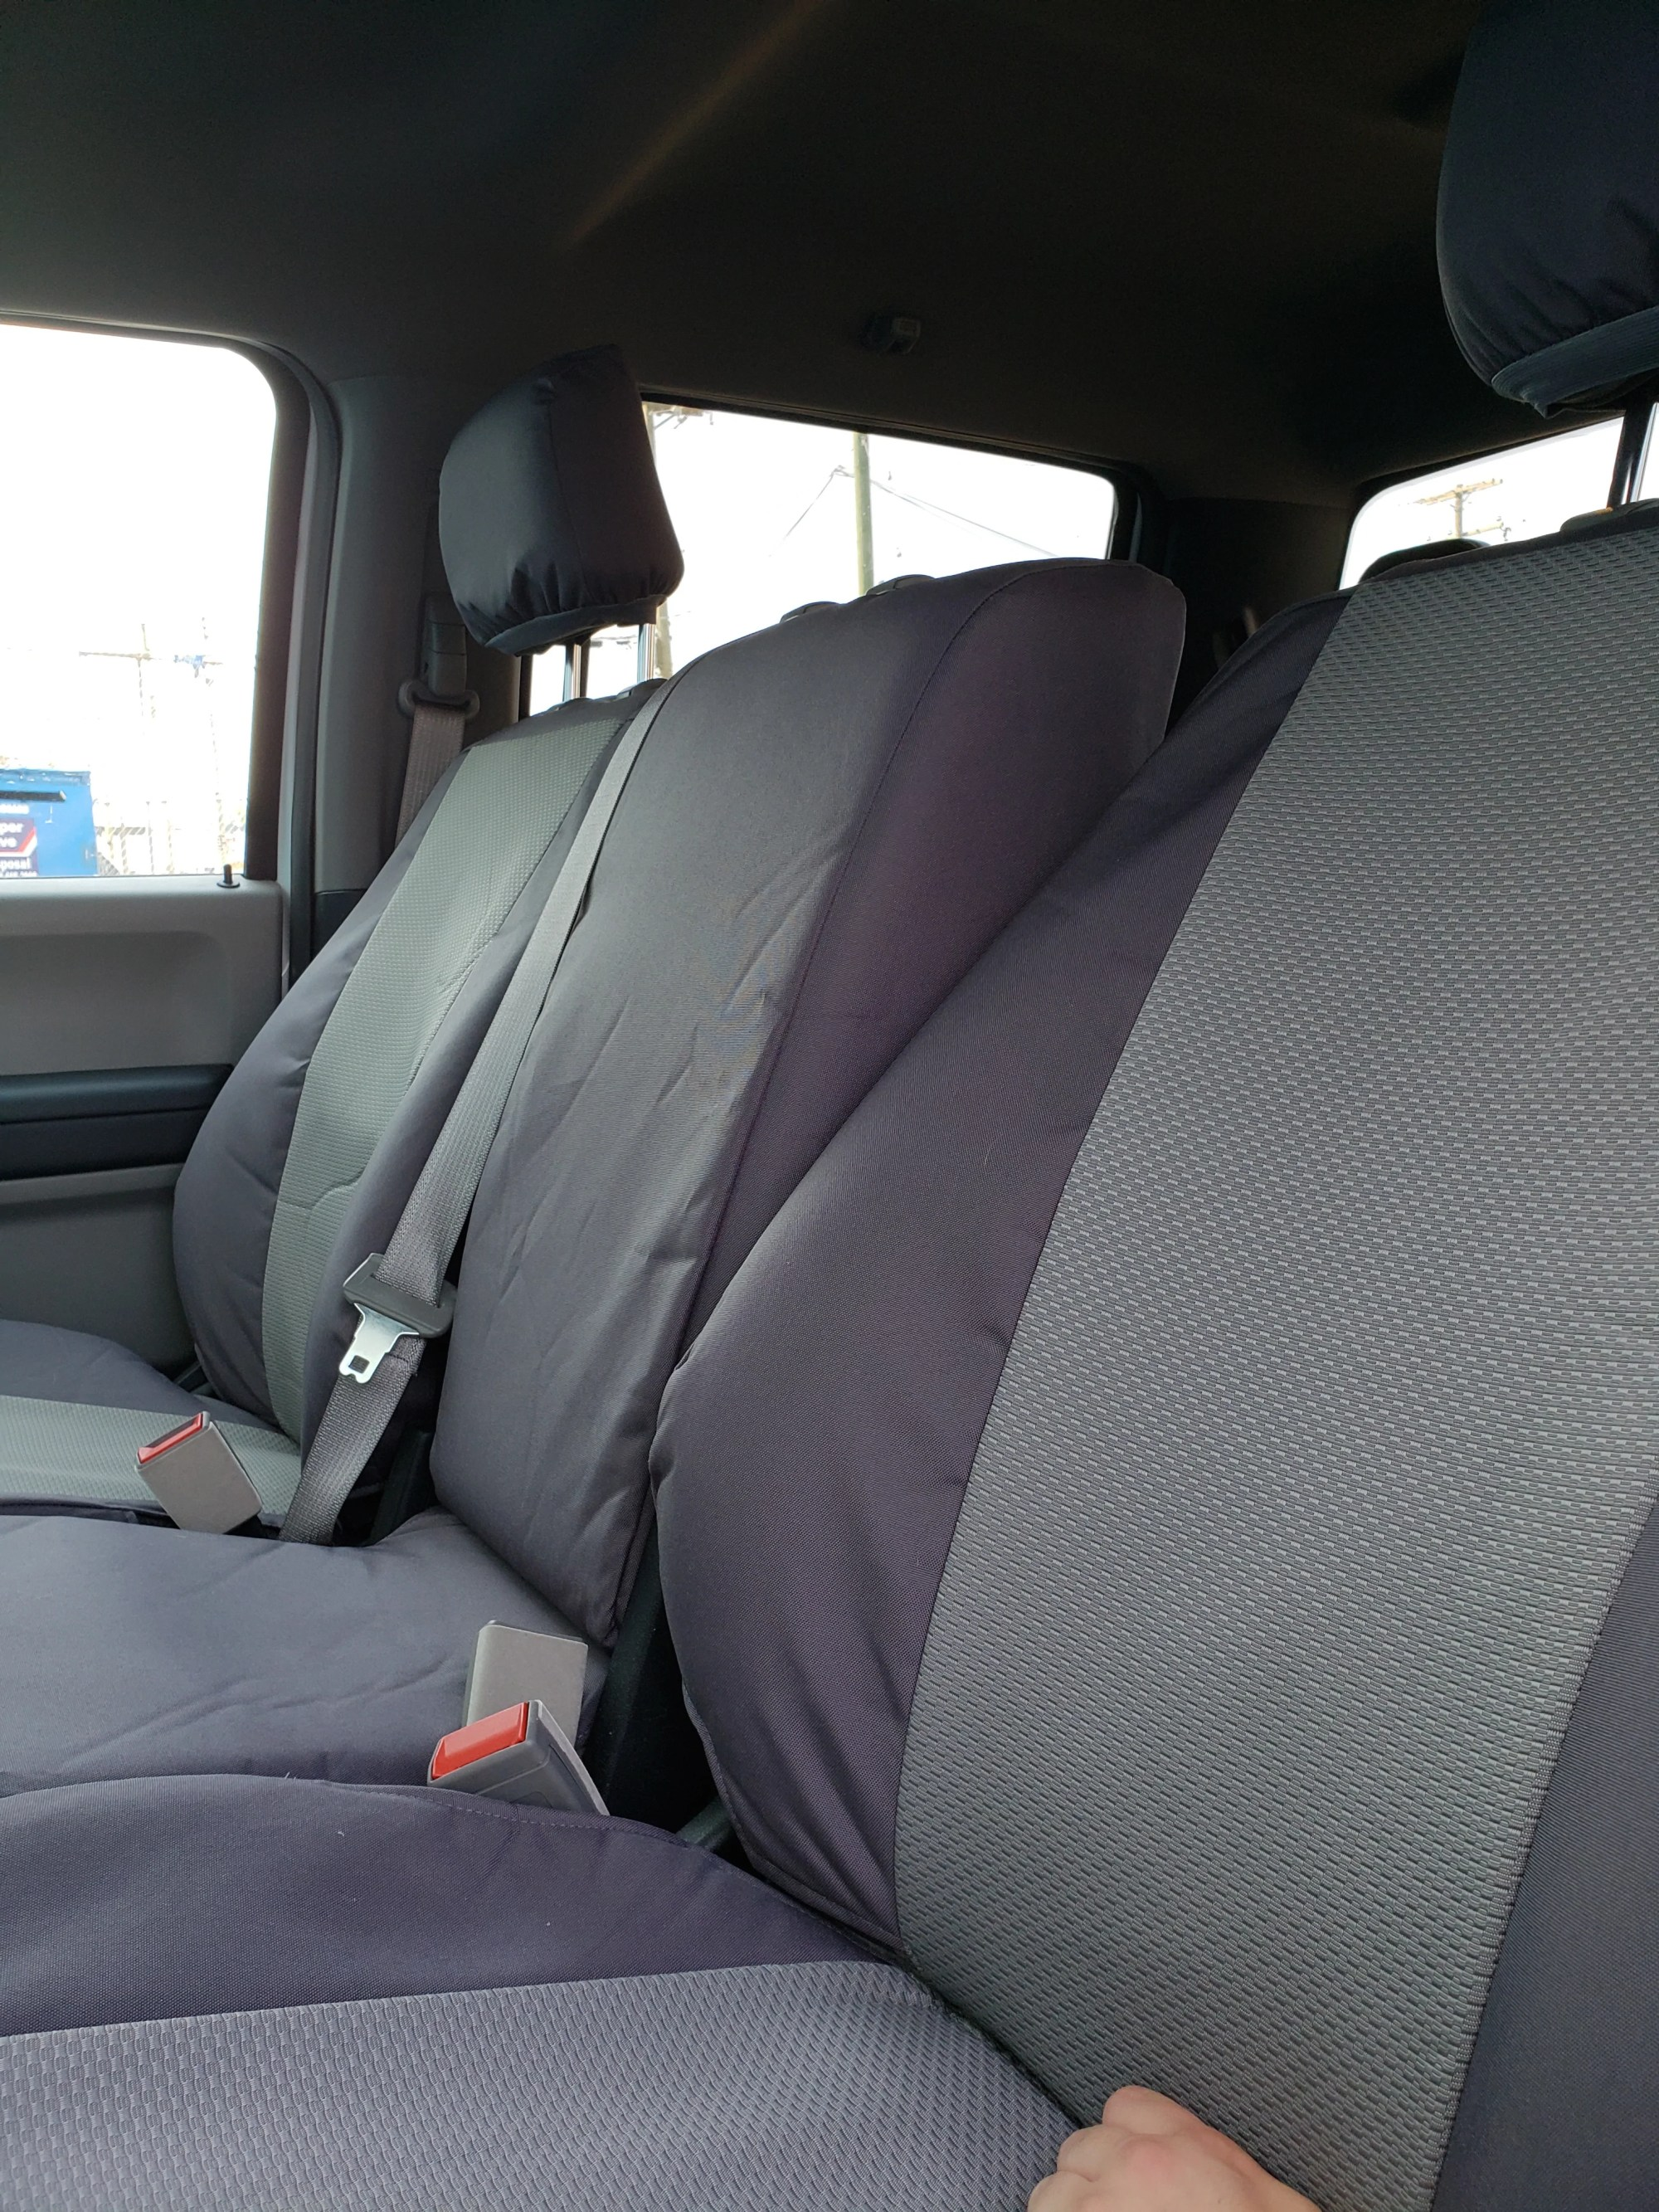 hight resolution of custom fit seat covers come with a 2 year warranty for fit workmanship and normal wear